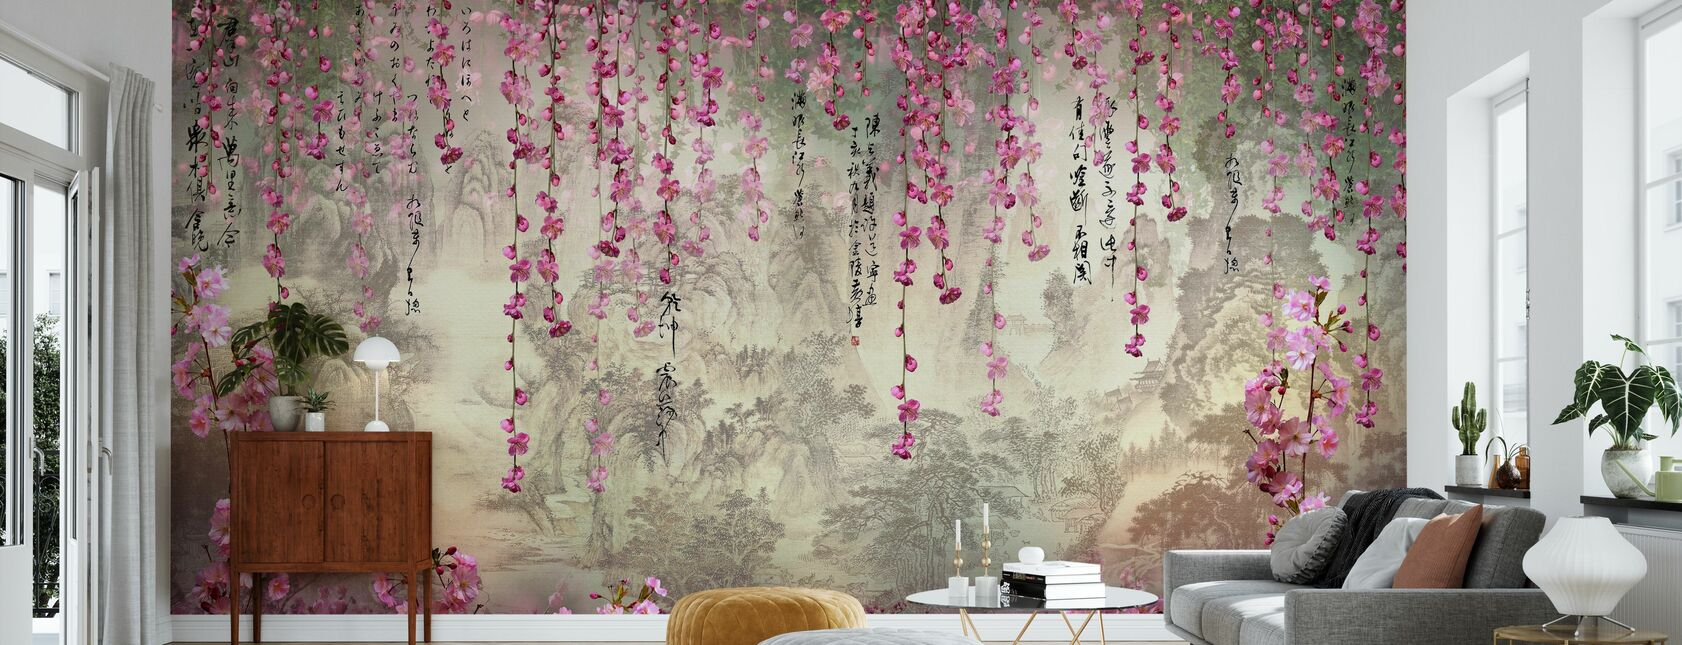 Hangning Flowers - Wallpaper - Living Room